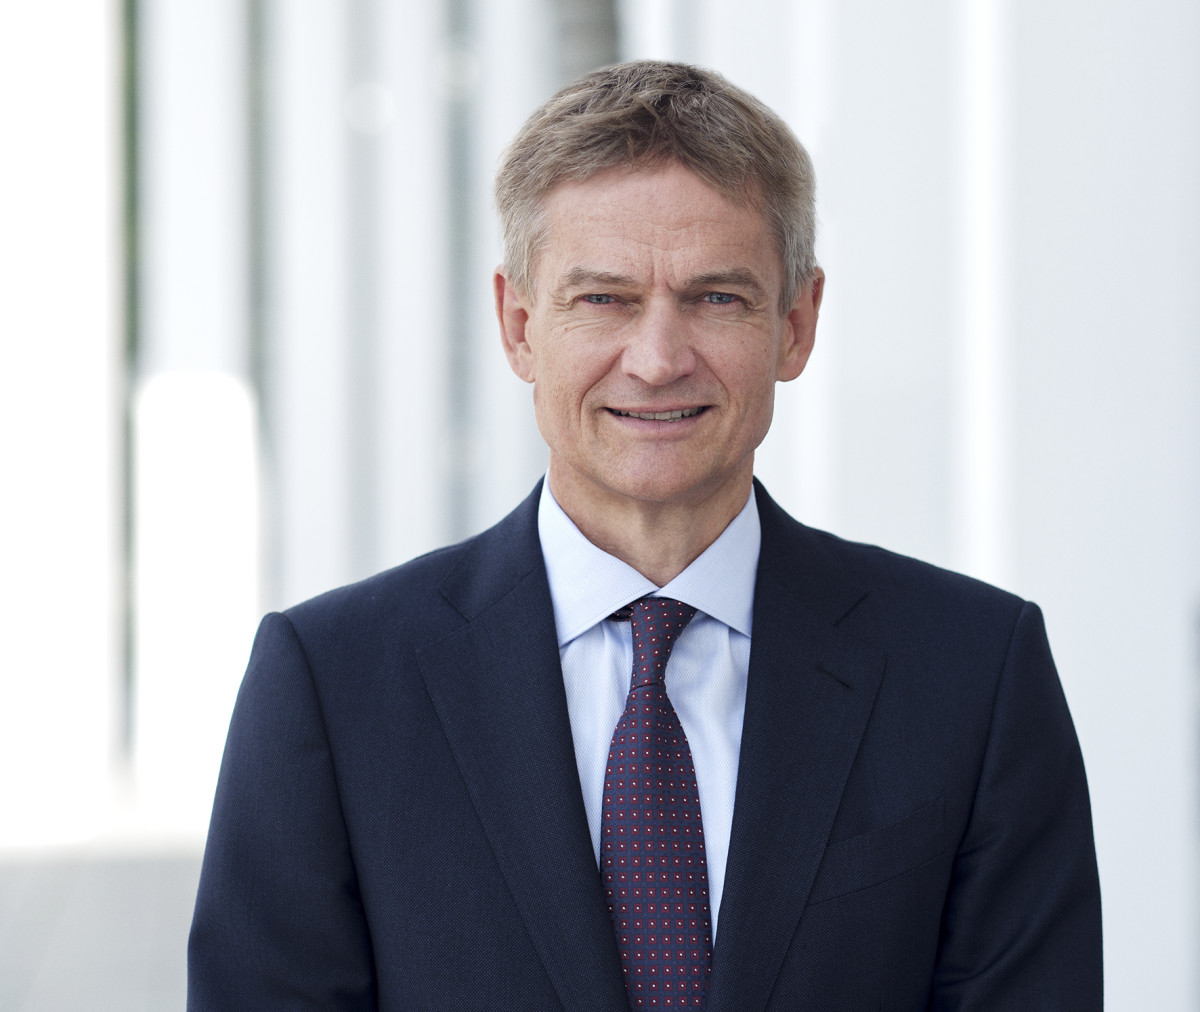 Torben Carlsen, President and CEO of DFDS